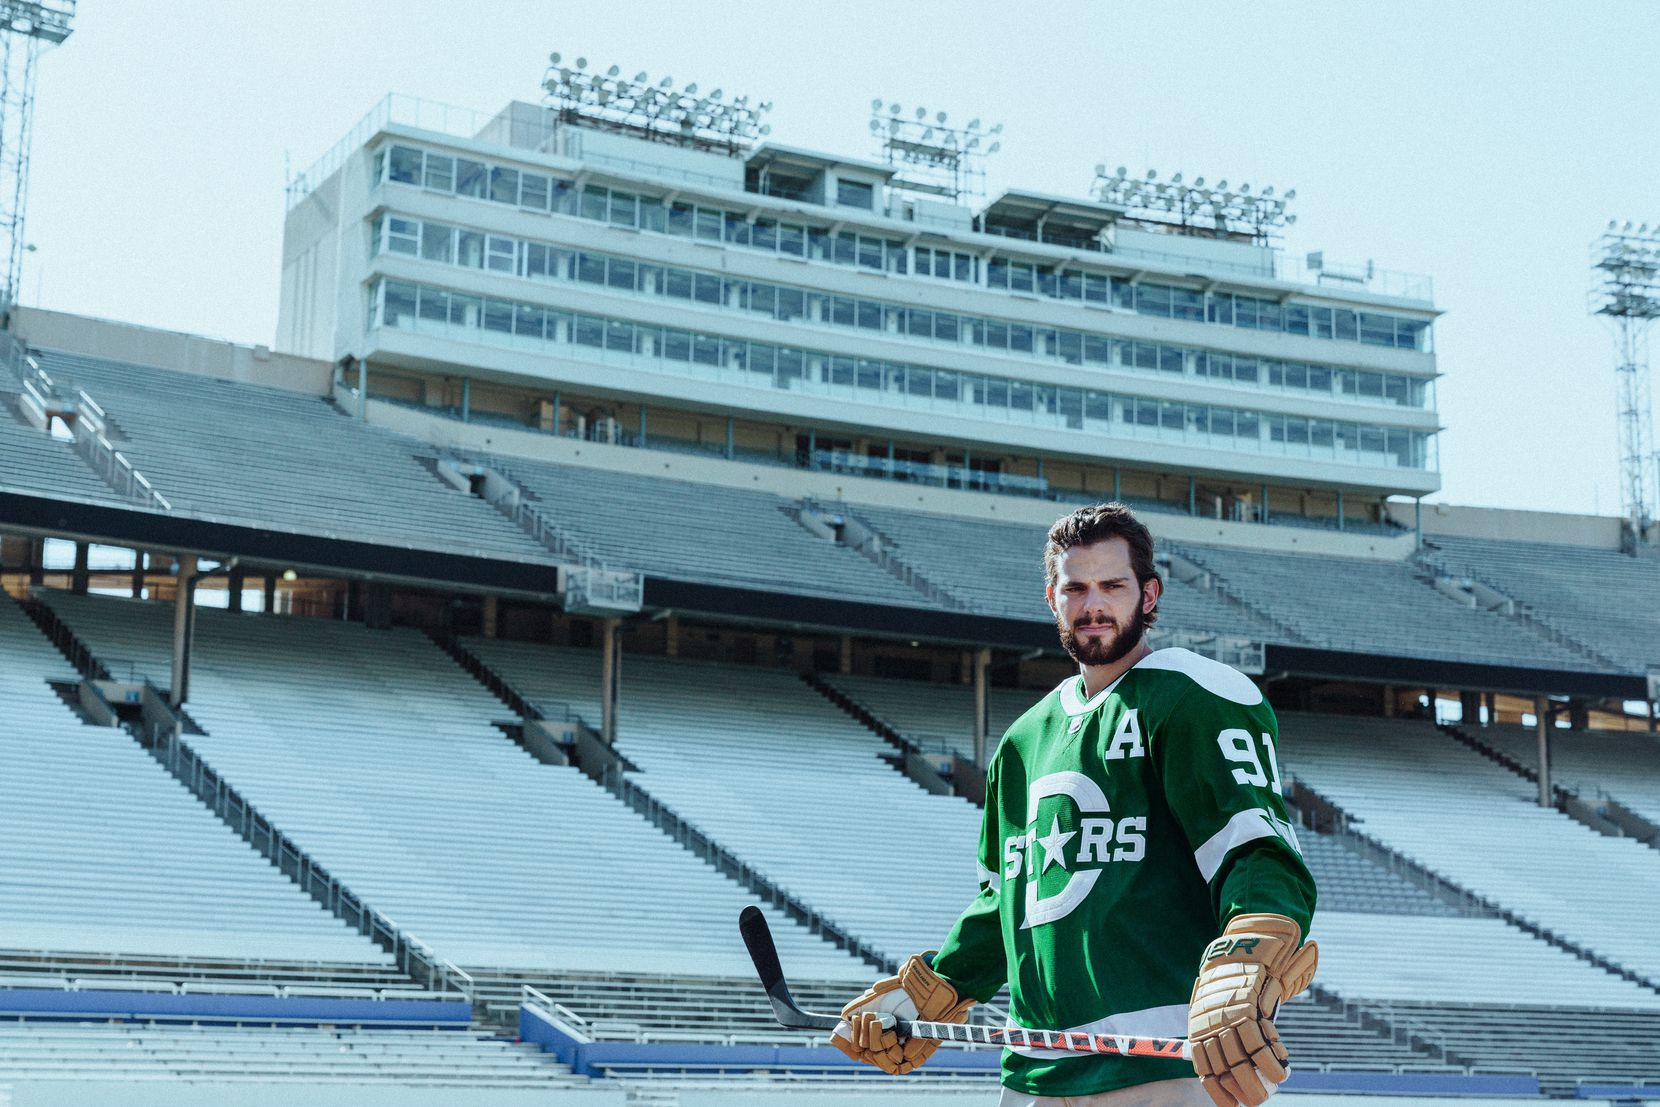 Tyler Seguin models the uniform the Dallas Stars will wear against the Nashville Predators on Jan. 1, 2020, in the Winter Classic at the Cotton Bowl.